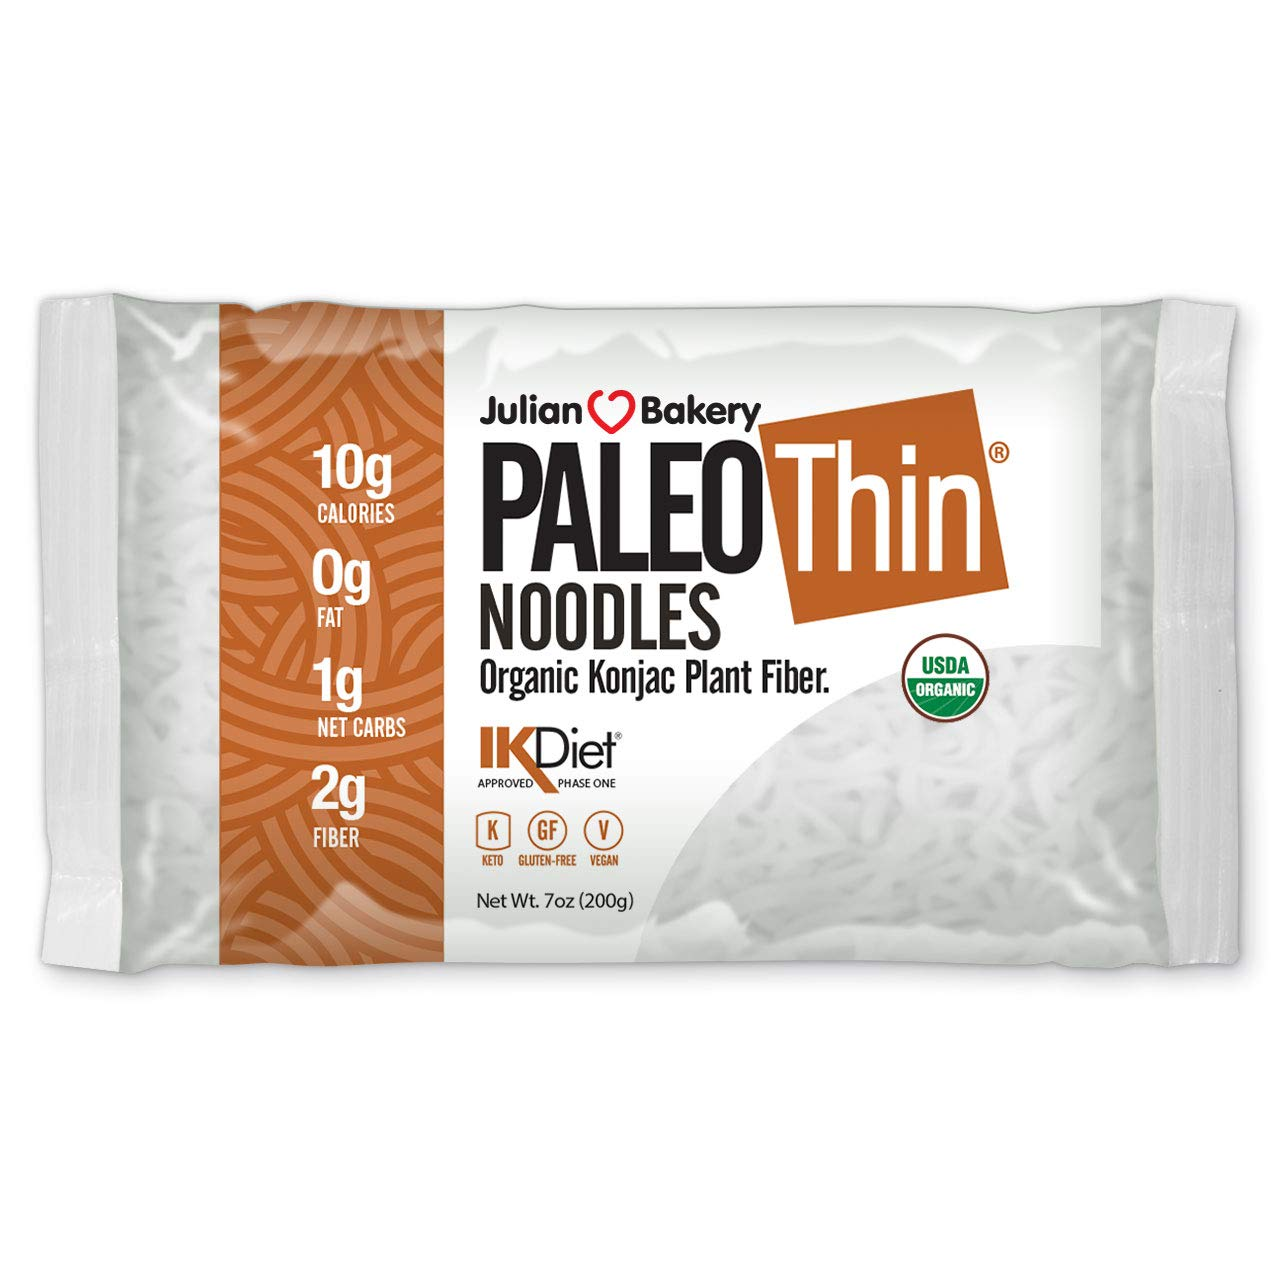 Organic Paleo Thin Noodles (6 Bags) Low Carb, Keto, Gluten Free, Vegan (Plant Based)